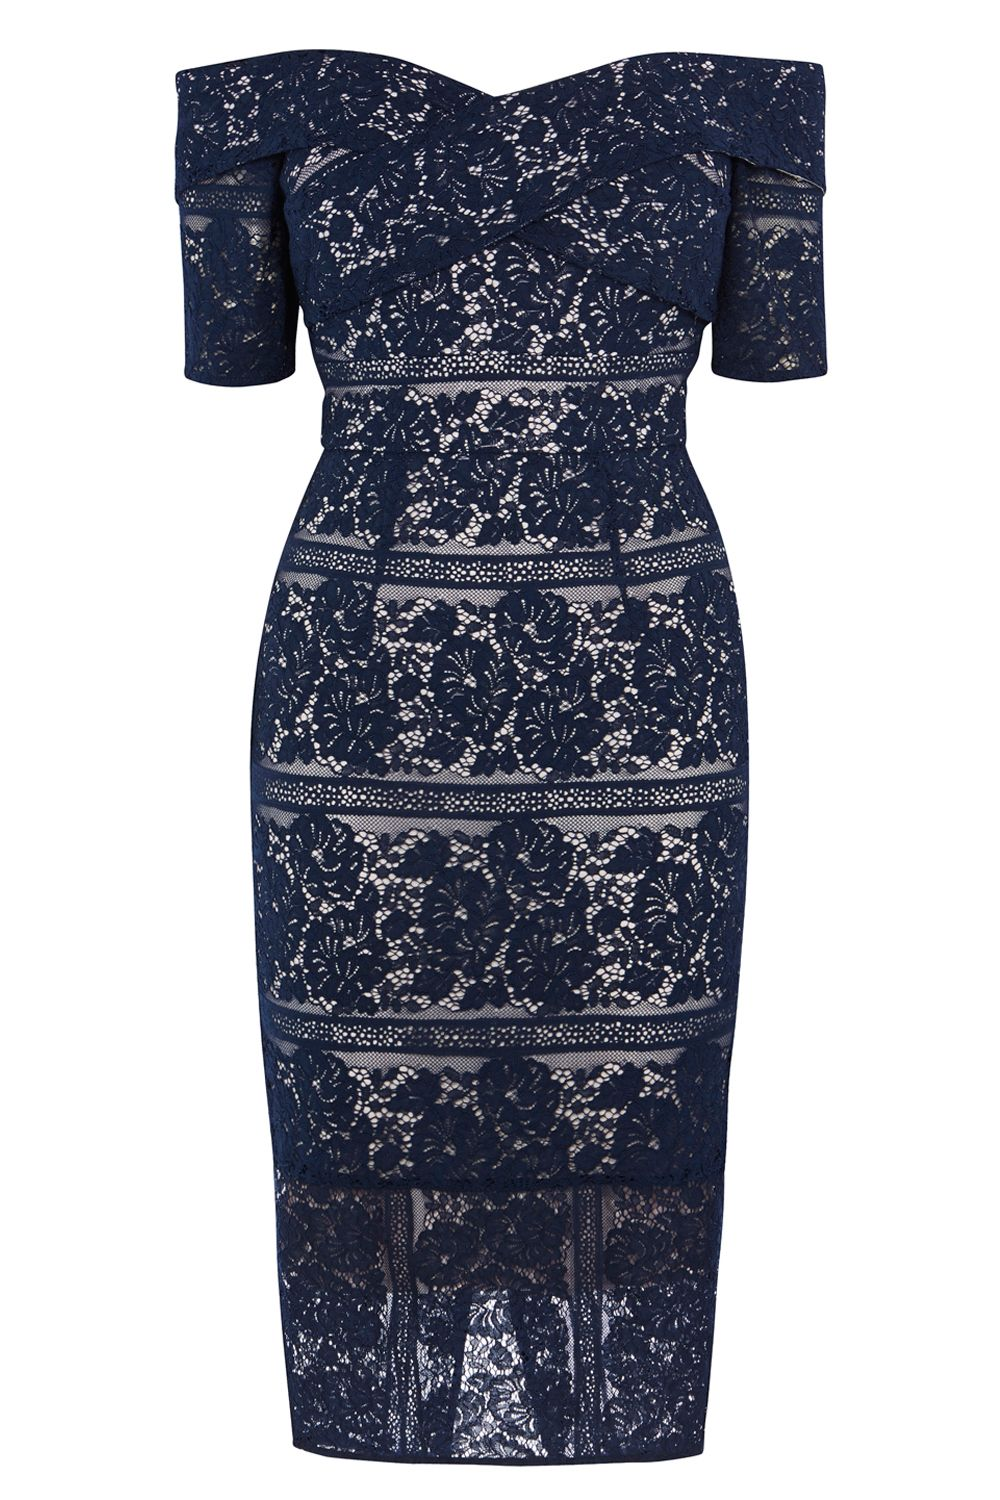 Coast Caldera Lace Shift Dress, Blue